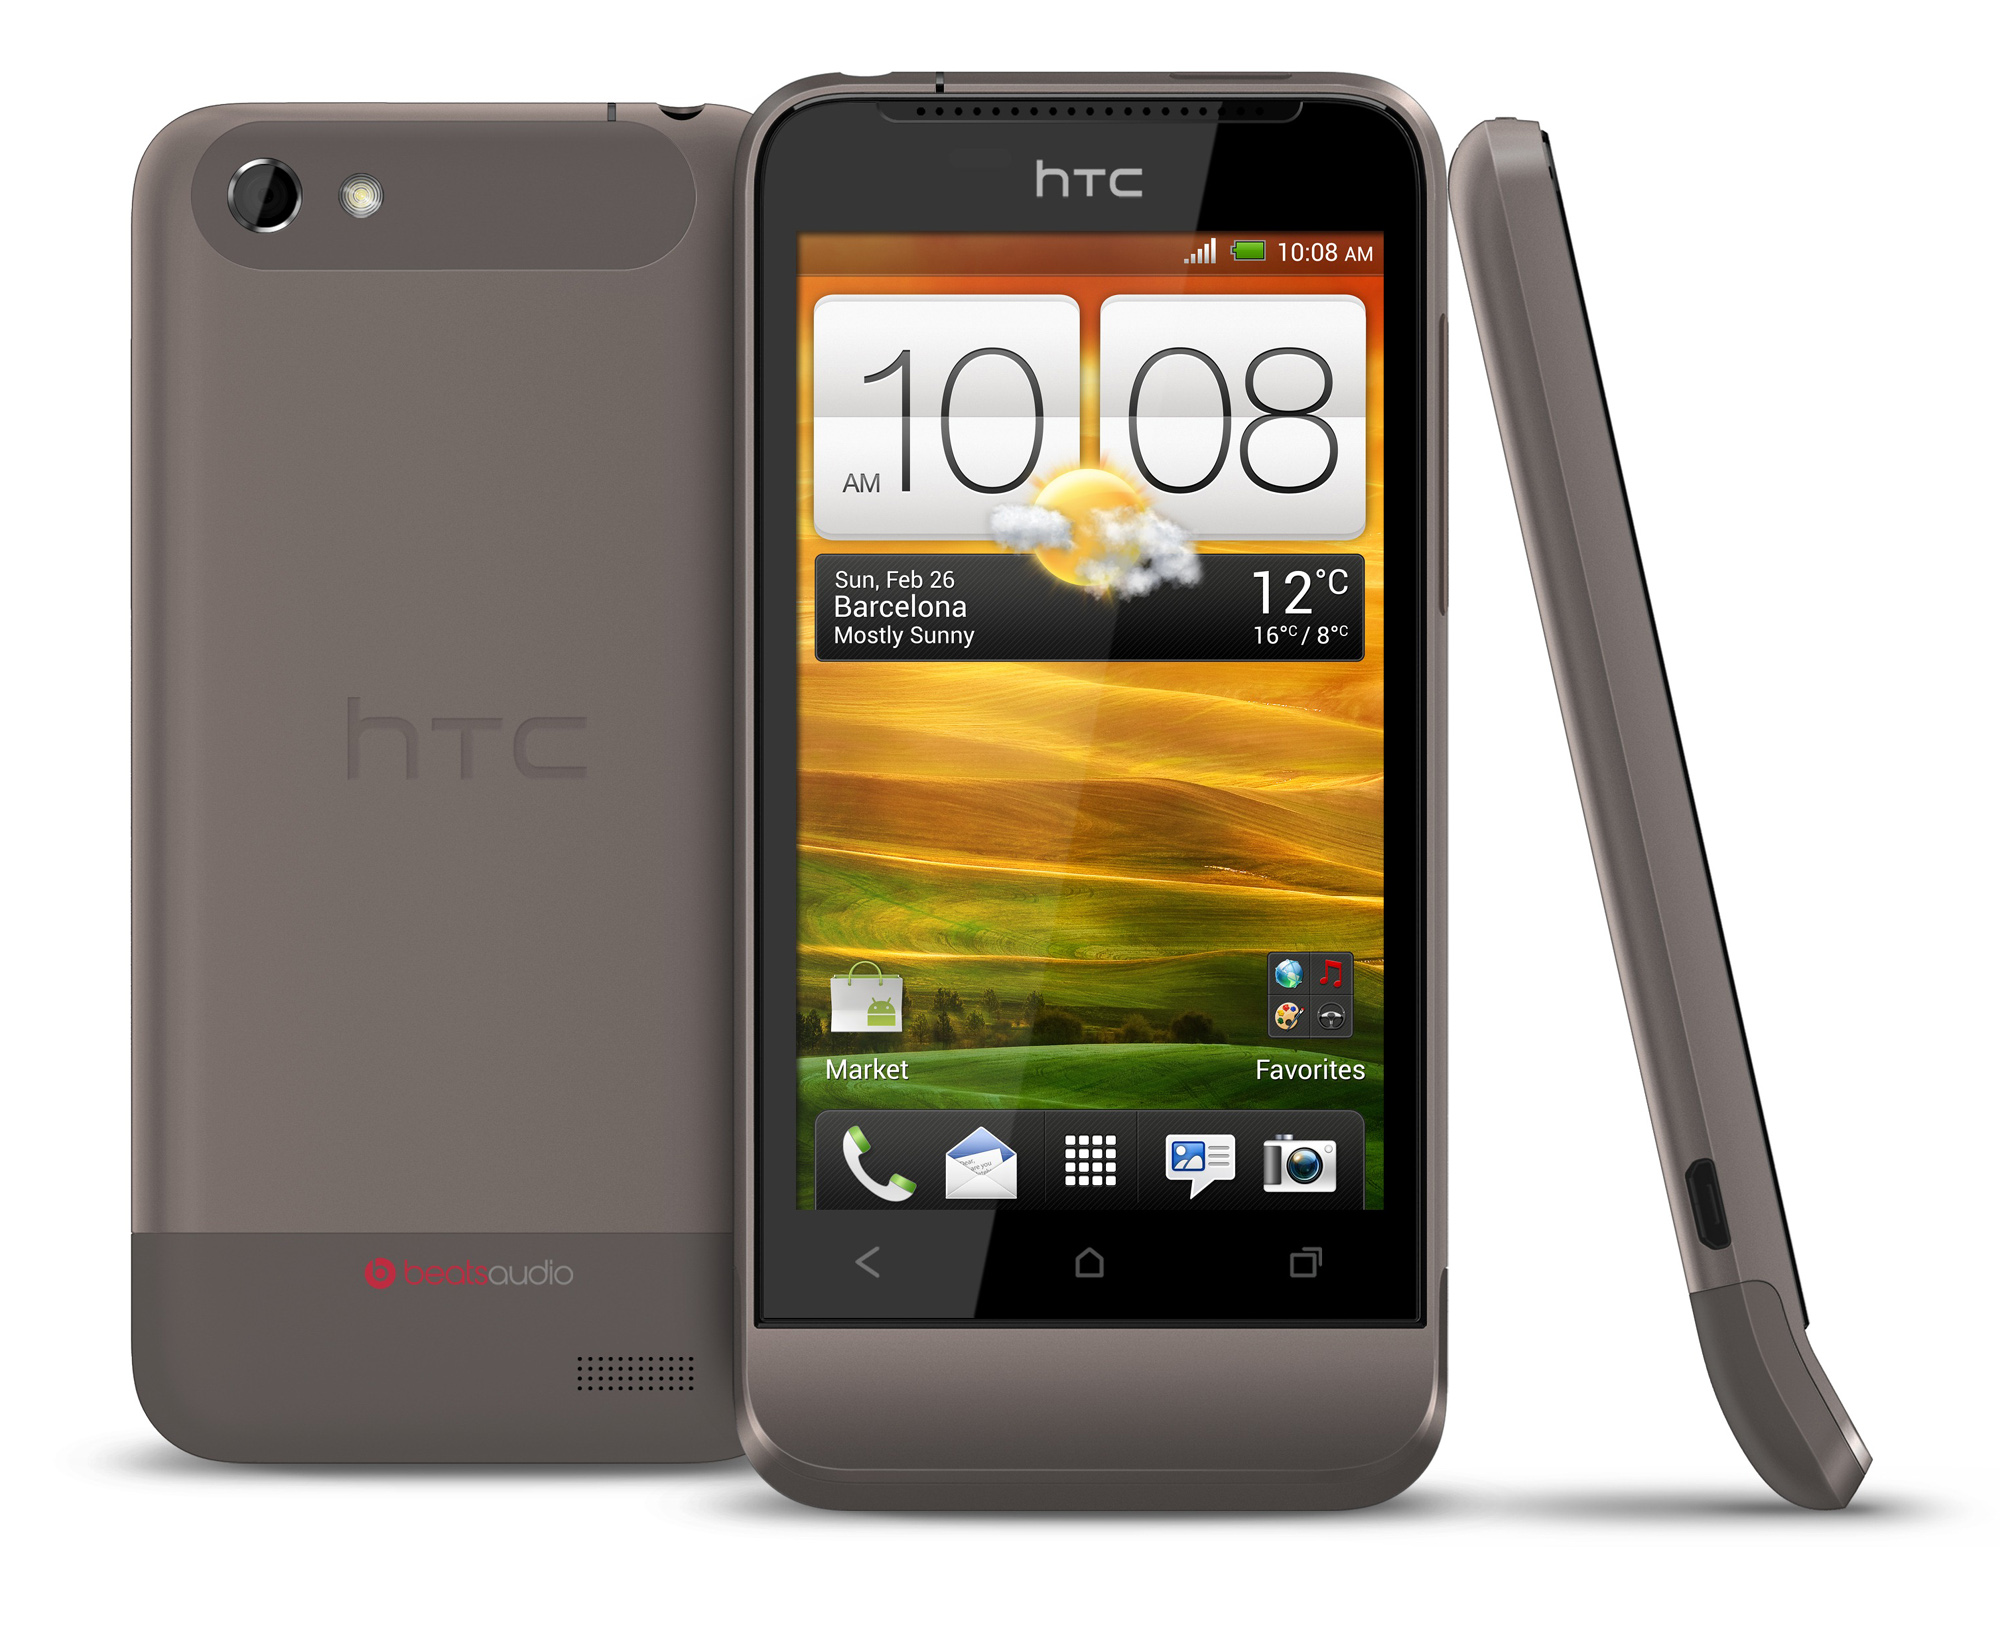 htc one v android 4 0 on a 3 7 screen plus htc chin